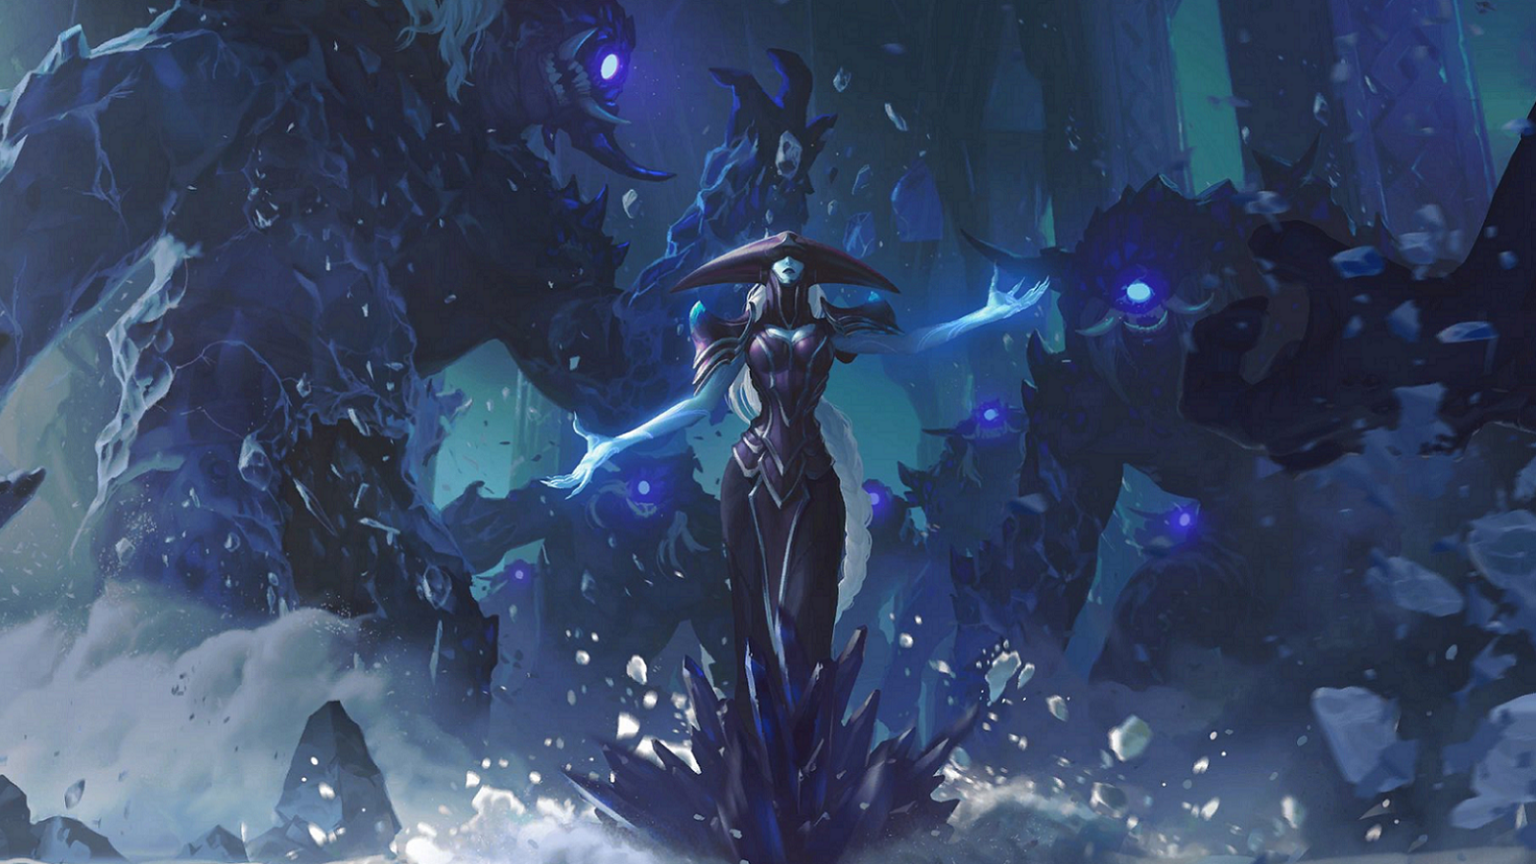 LEGENDS OF RUNETERRA: GUIDE TO THE BEST DECKS WITH LISSANDRA